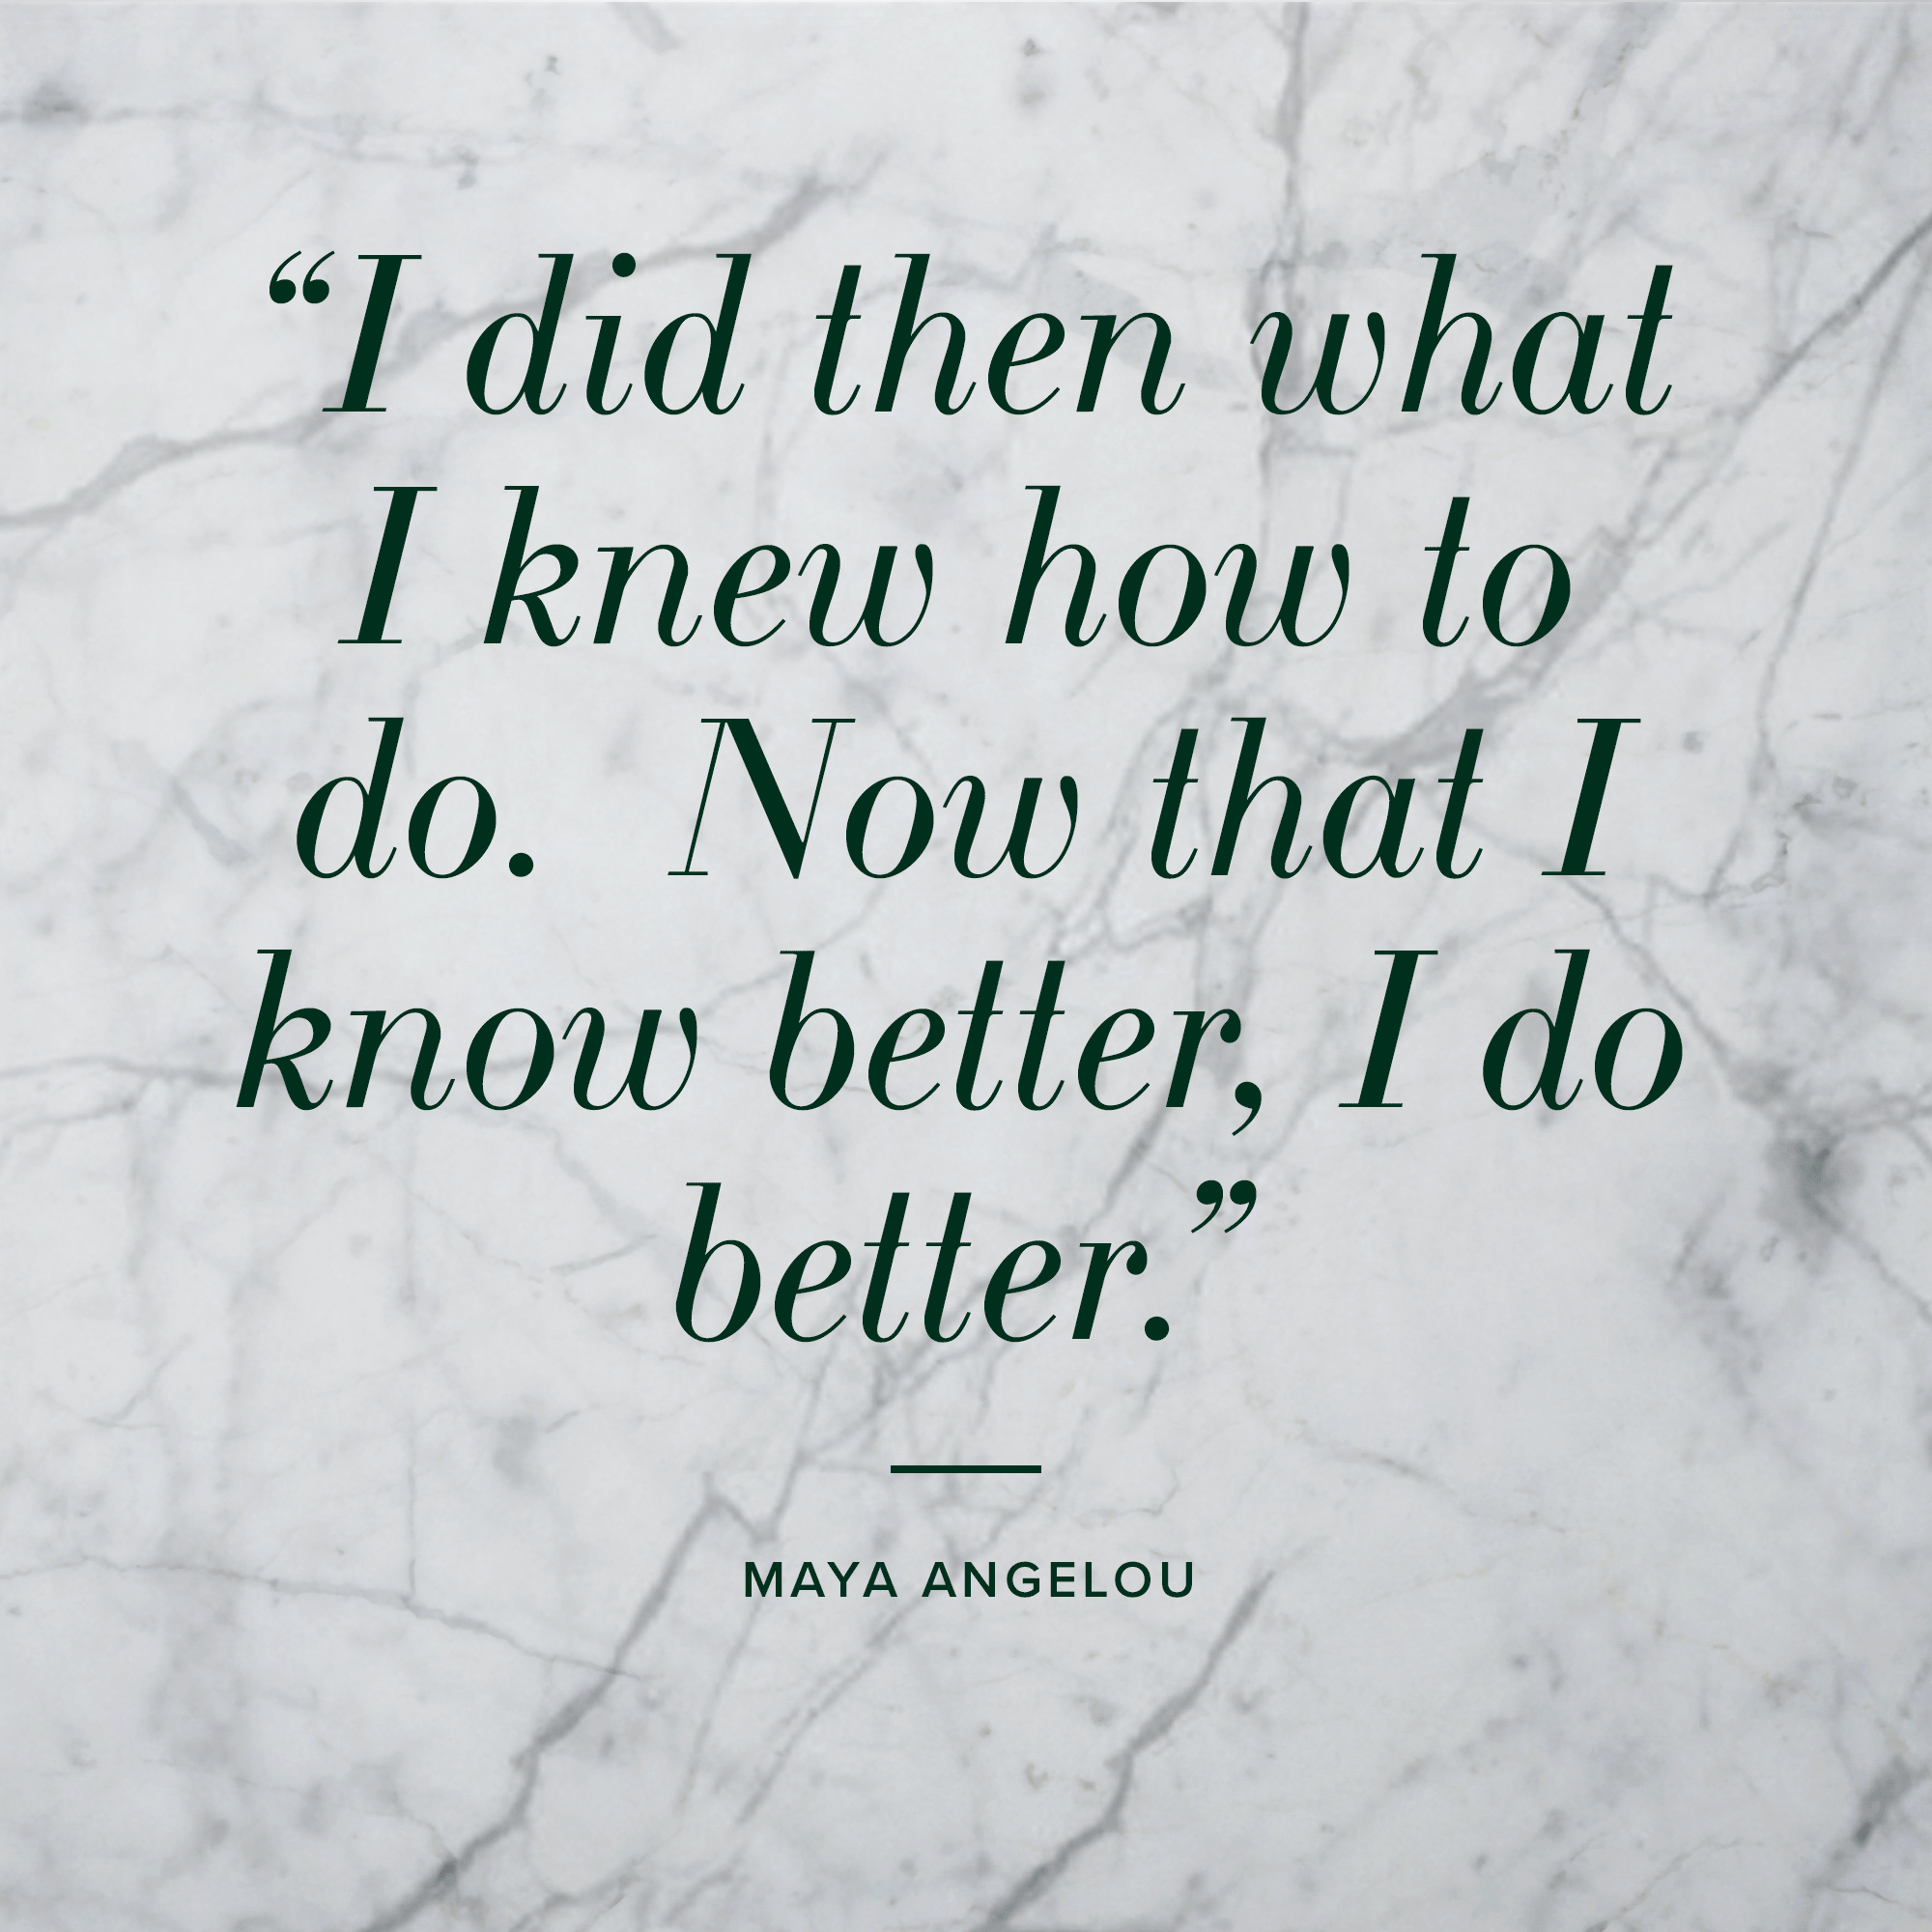 Quote-Maya-Angelou-do-better.png